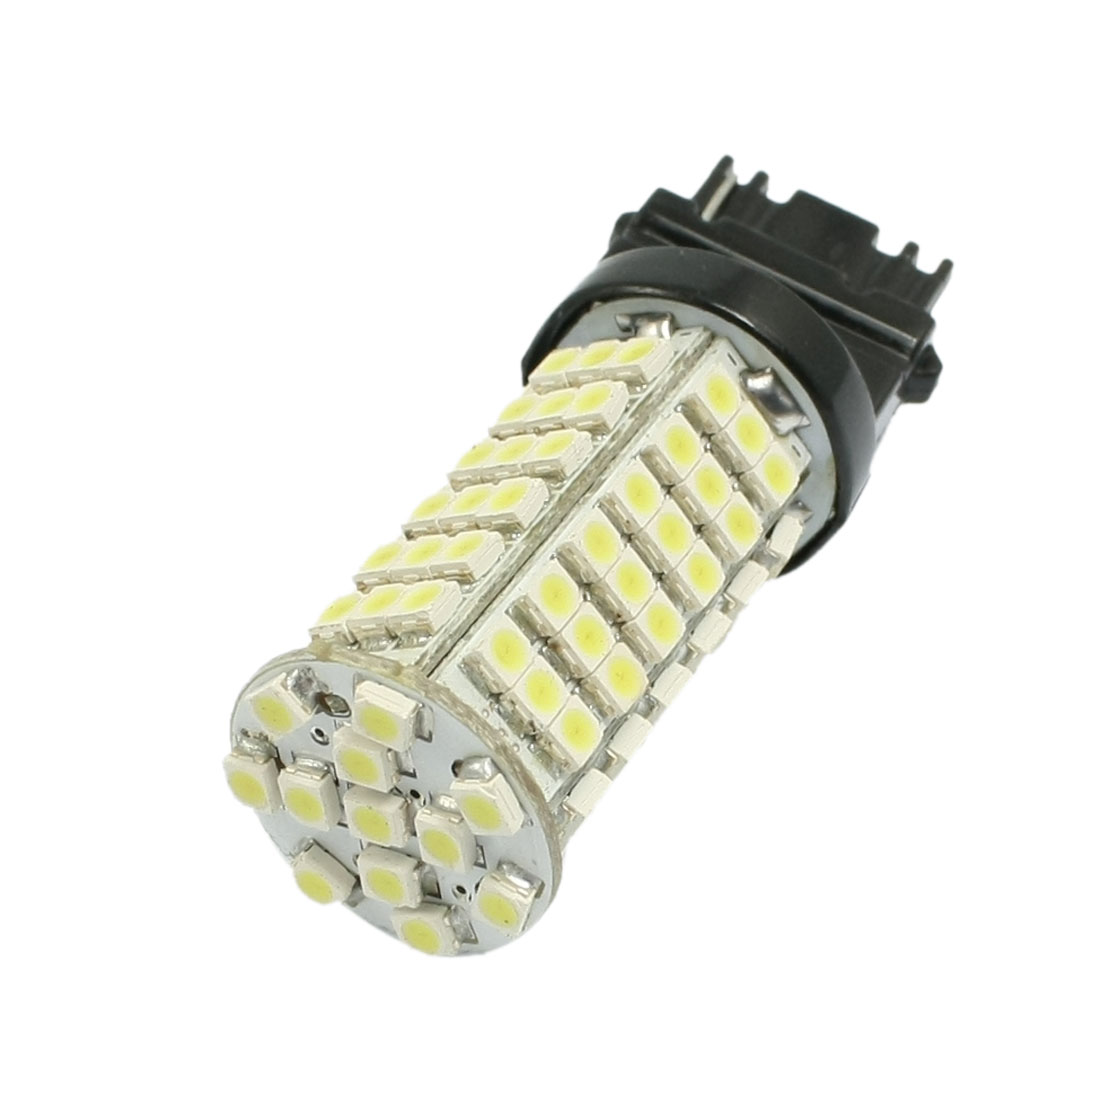 T20 102 White SMD 1210 LED Tail Turn Signal Reverse Car Light Bulbs